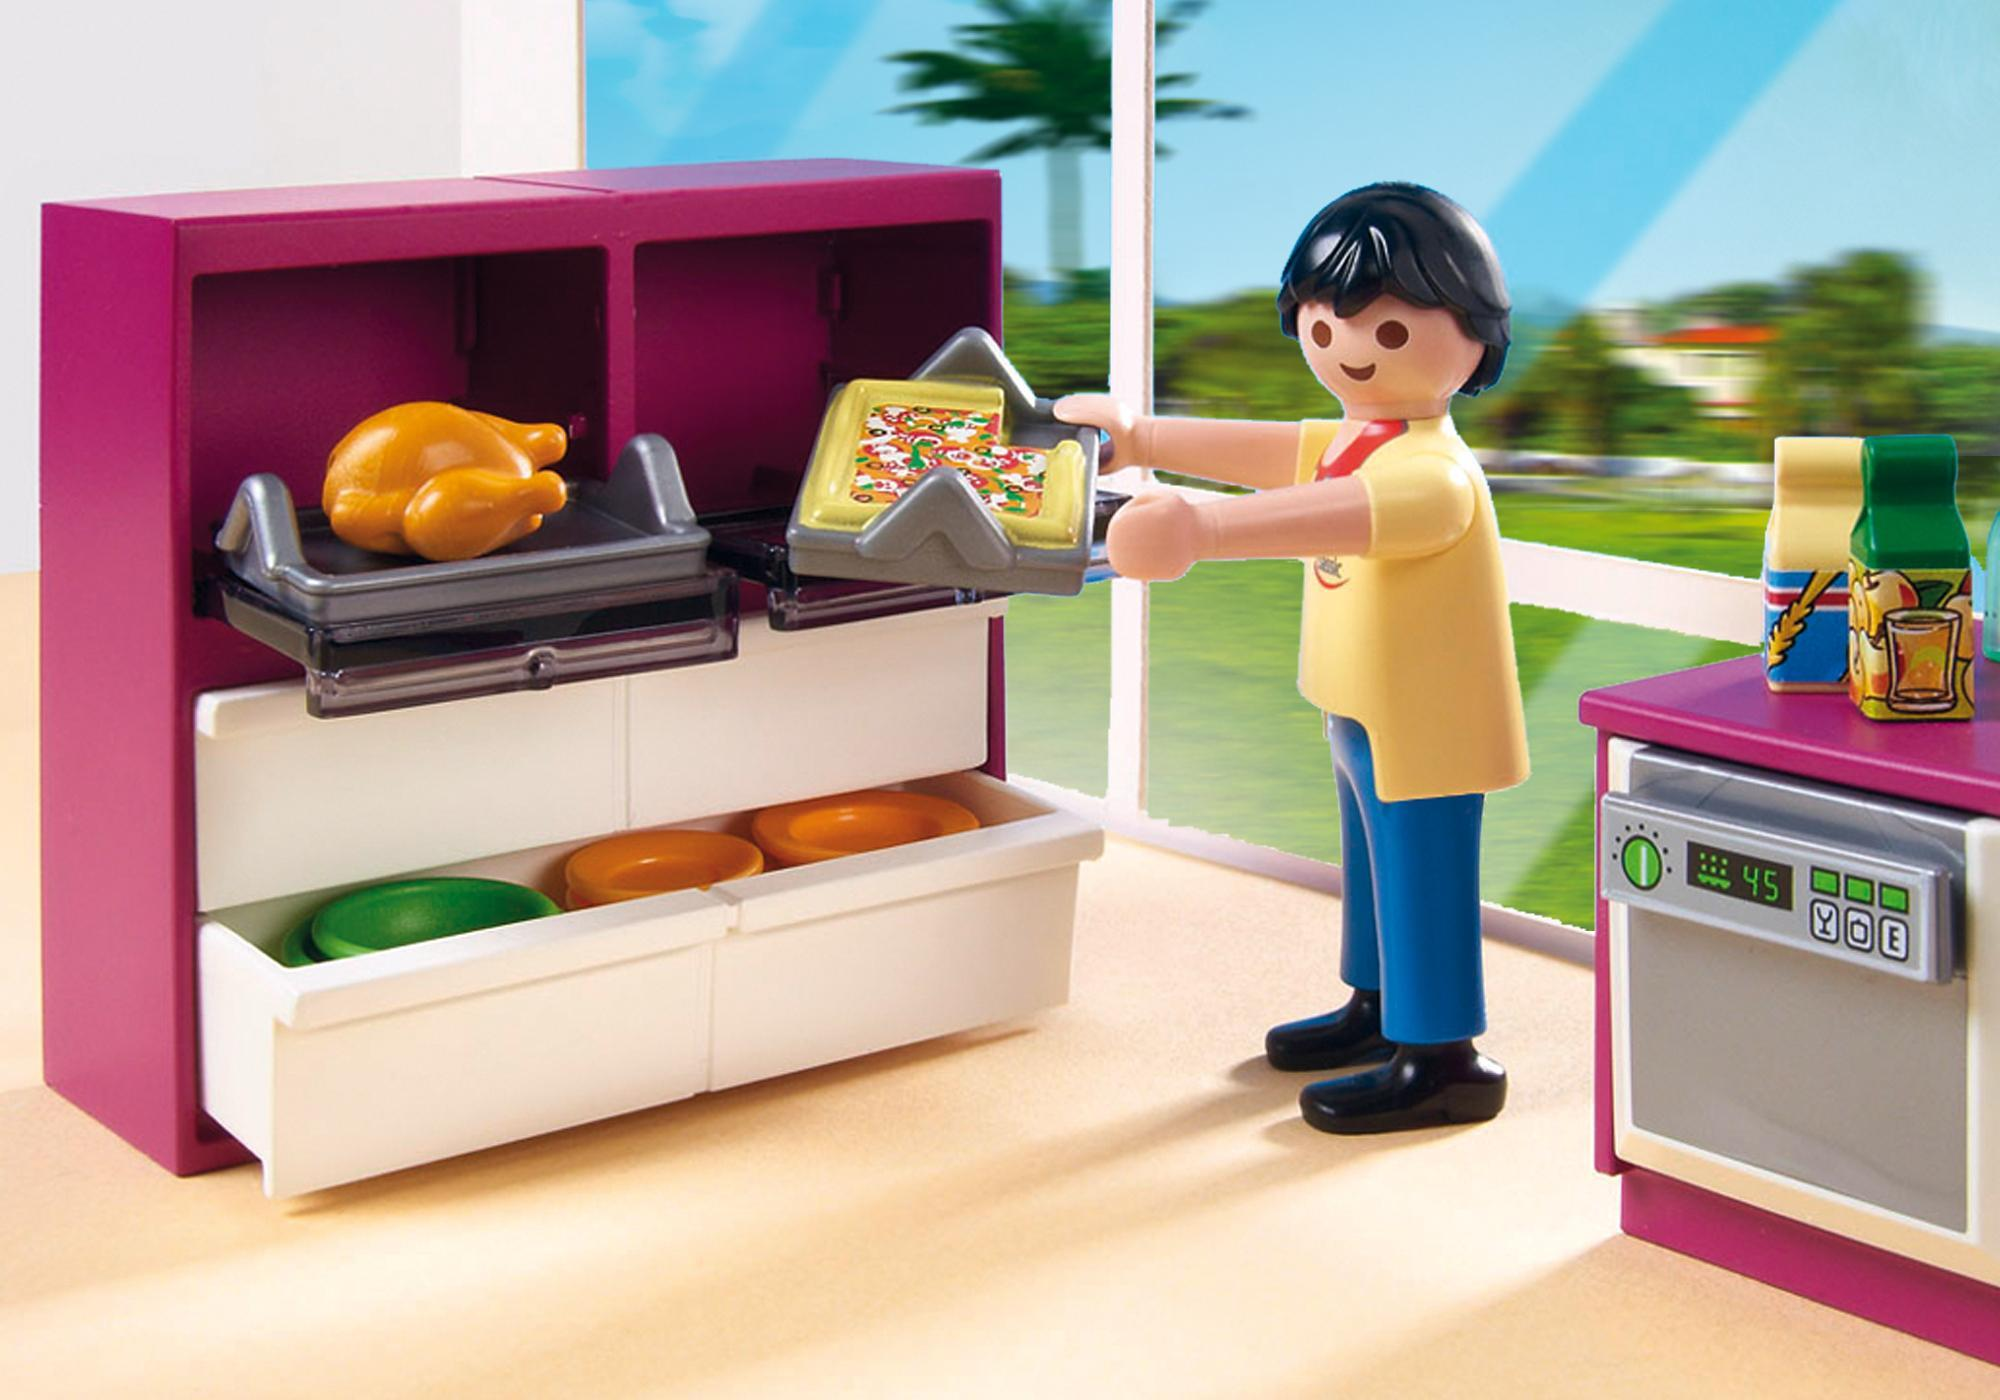 http://media.playmobil.com/i/playmobil/5582_product_extra3